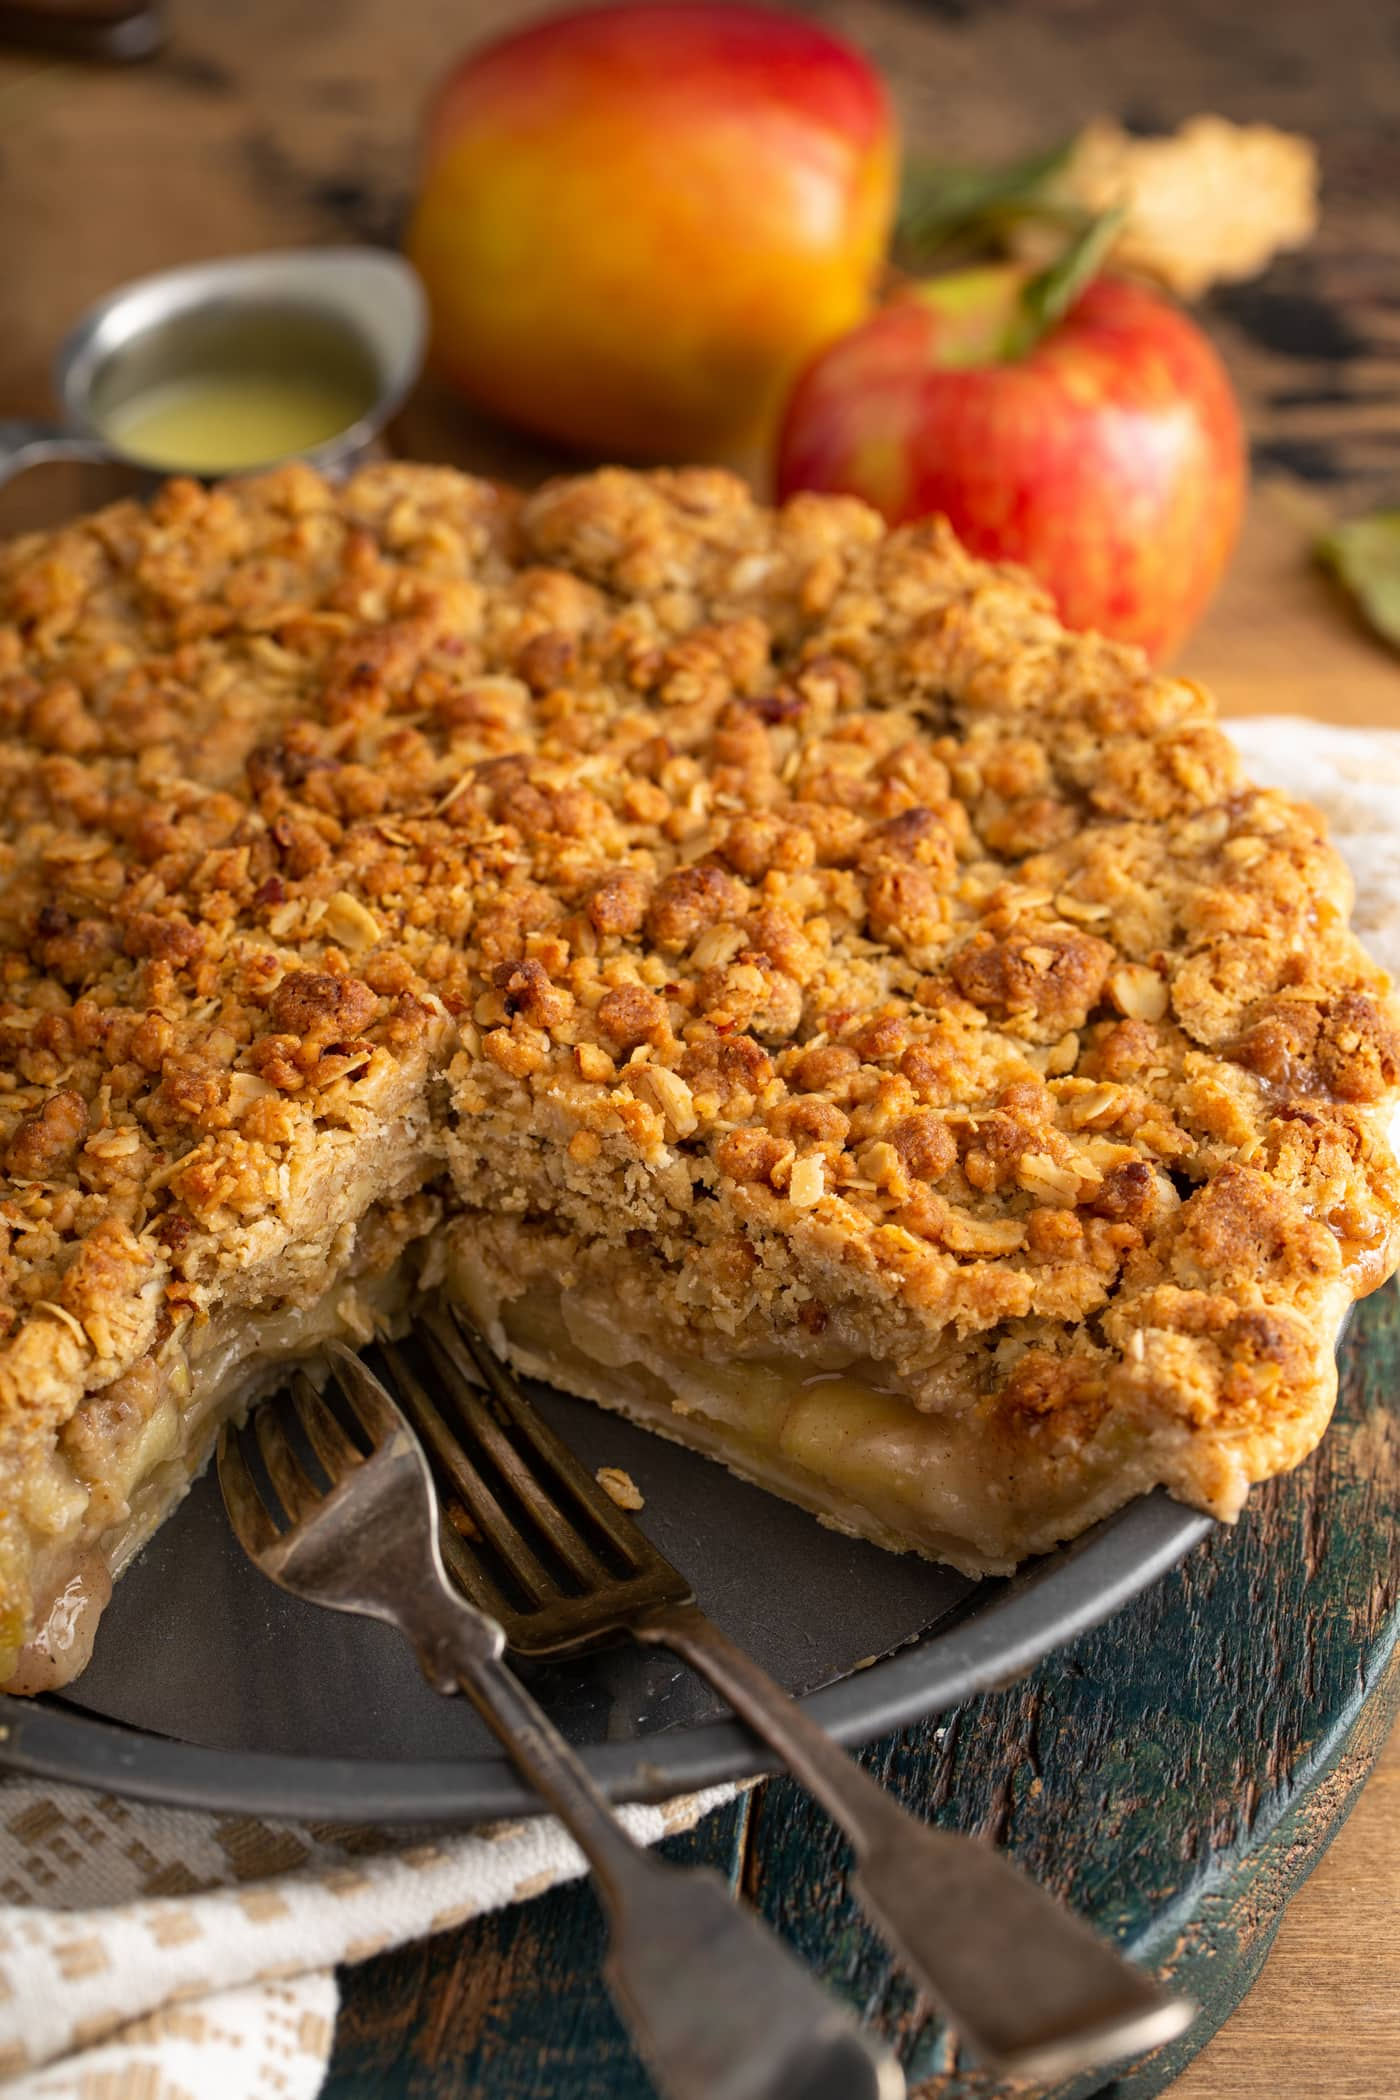 A baked Dutch apple pie with a slice removed. You can see the sliced apples inside and the brown crumble on top of the pie. A couple of apples are in the background.